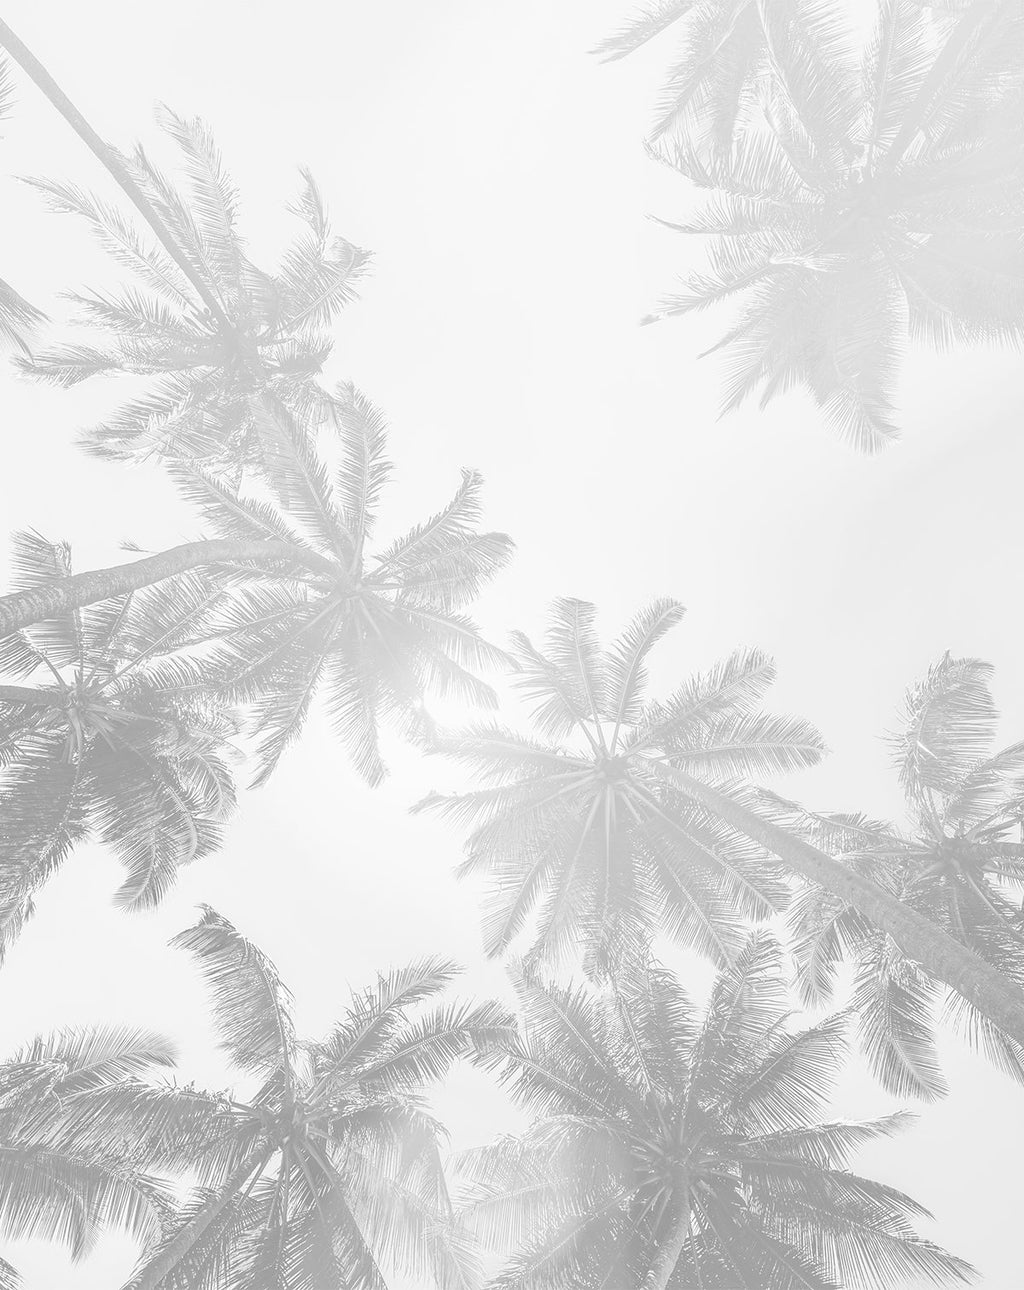 Under the Palms Monochrome Wallpaper Mural - Olive et Oriel